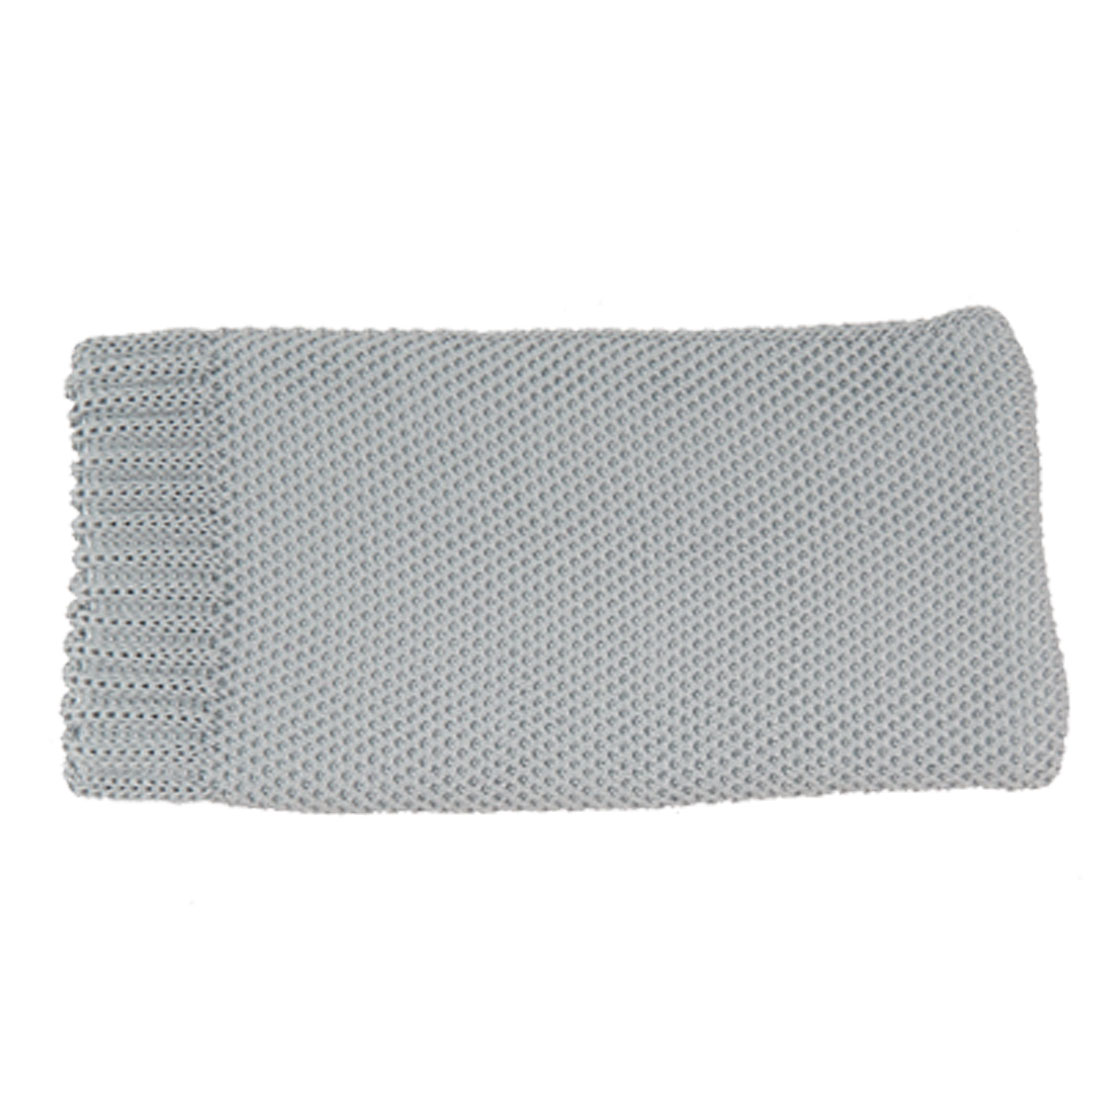 Mobile Phone Gray Knitted Elastic Pouch Bag Protector